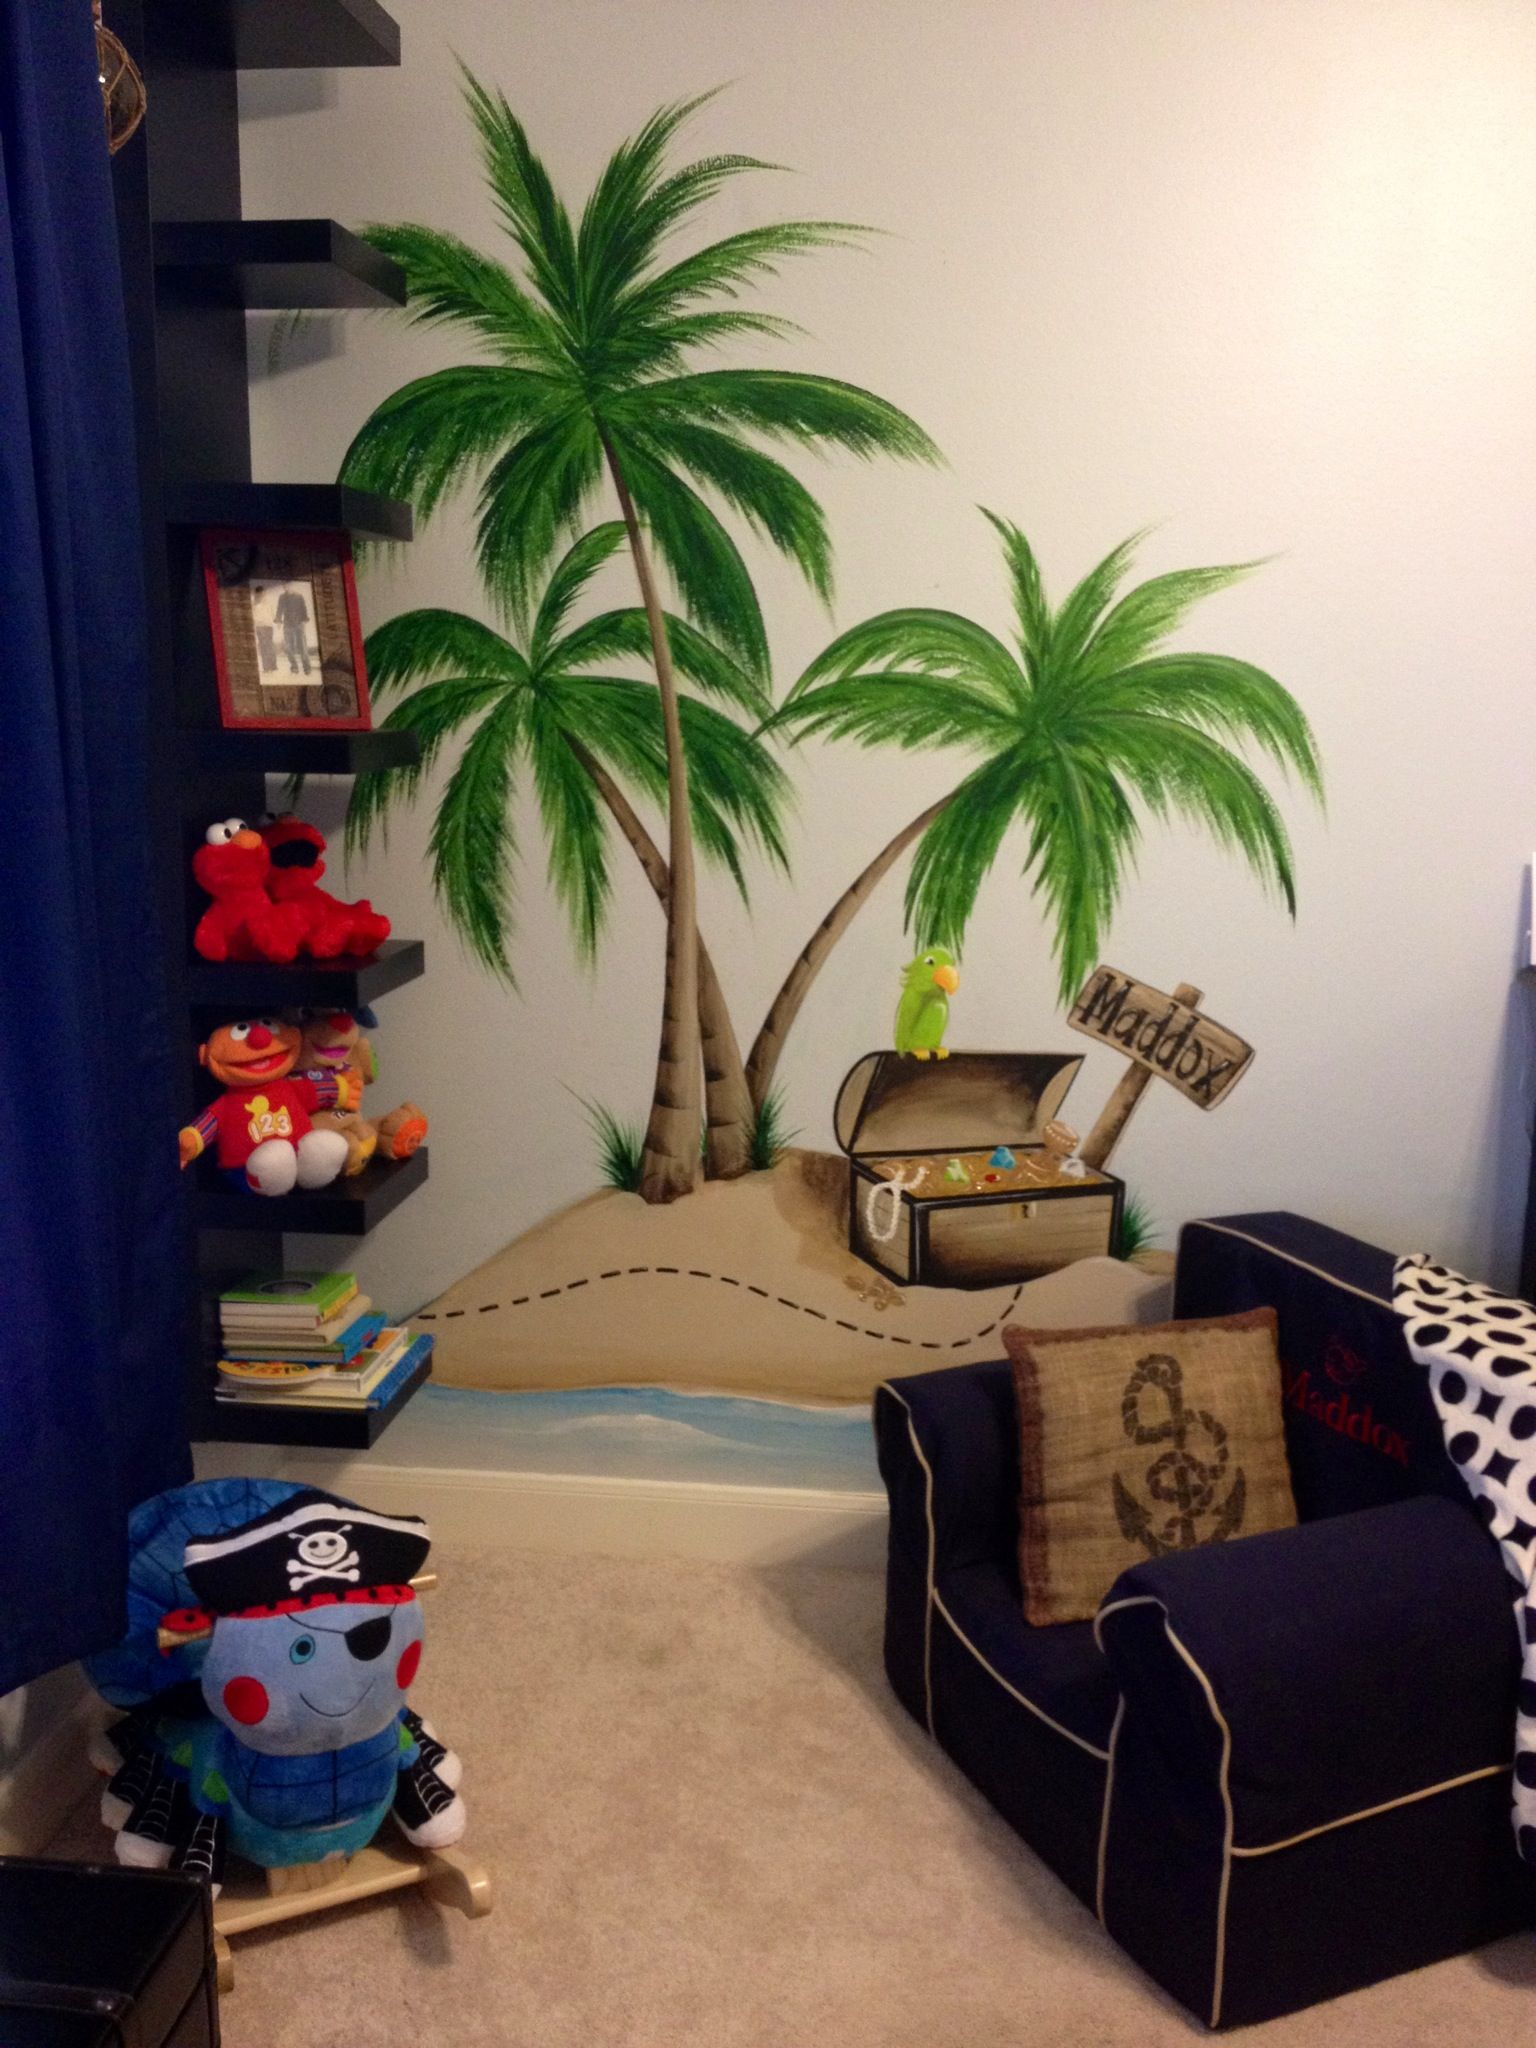 Pirate Themed Bedroom Furniture Wwwmuralsbywhitneycom Painted An Incredible Pirate Themed Mural